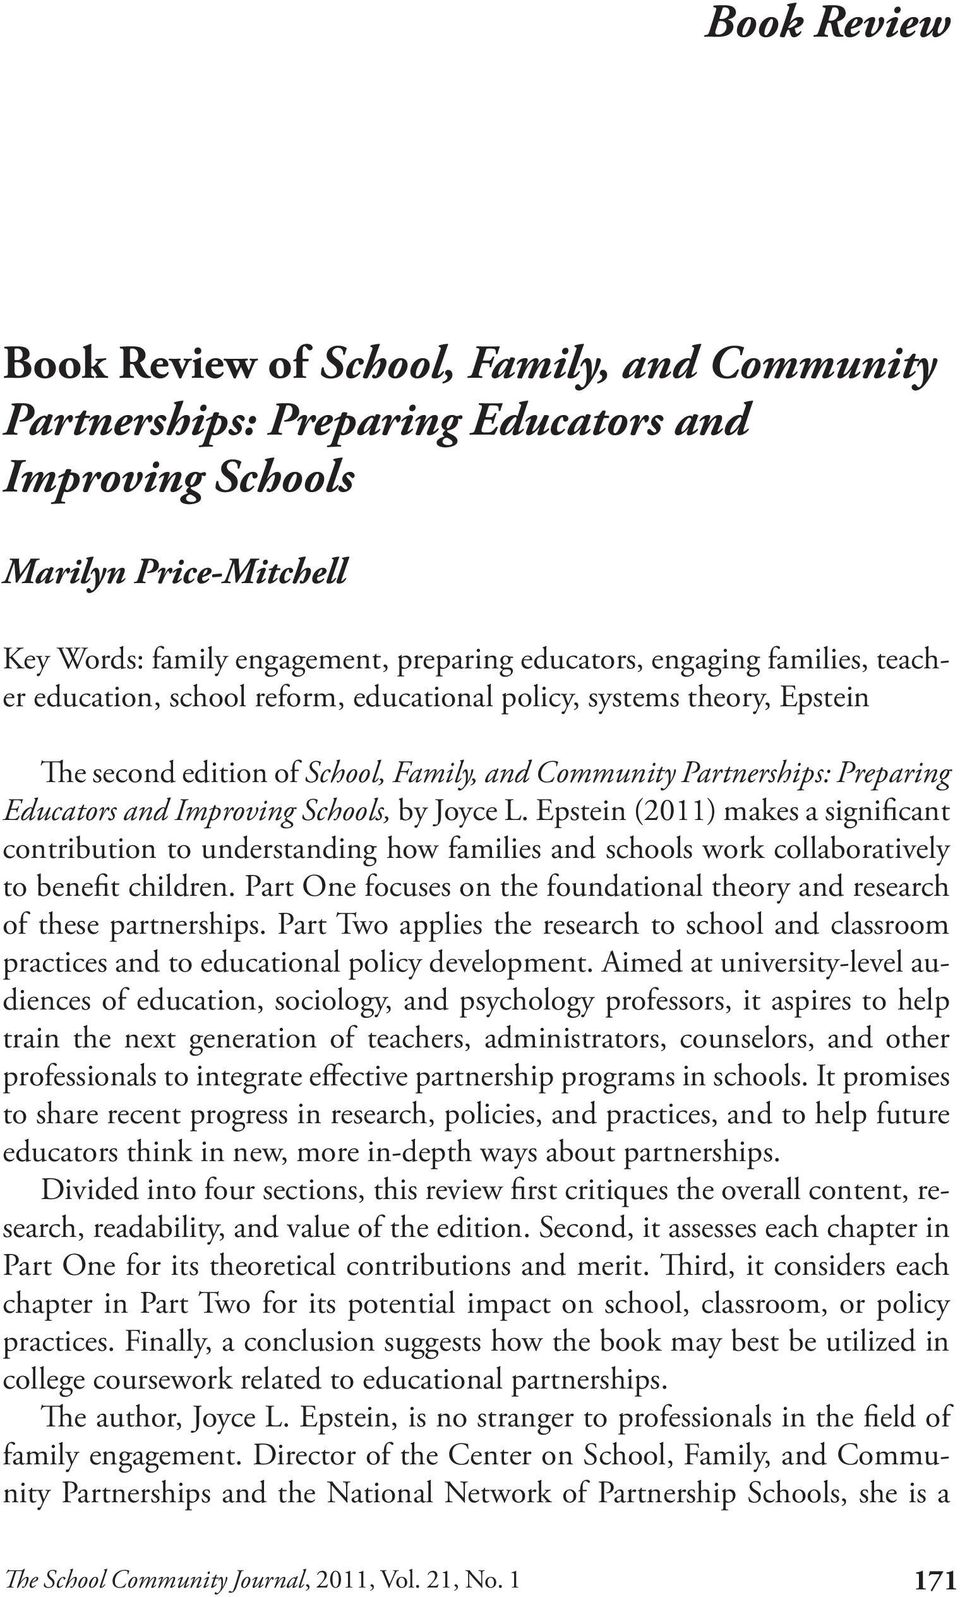 Joyce L. Epstein (2011) makes a significant contribution to understanding how families and schools work collaboratively to benefit children.